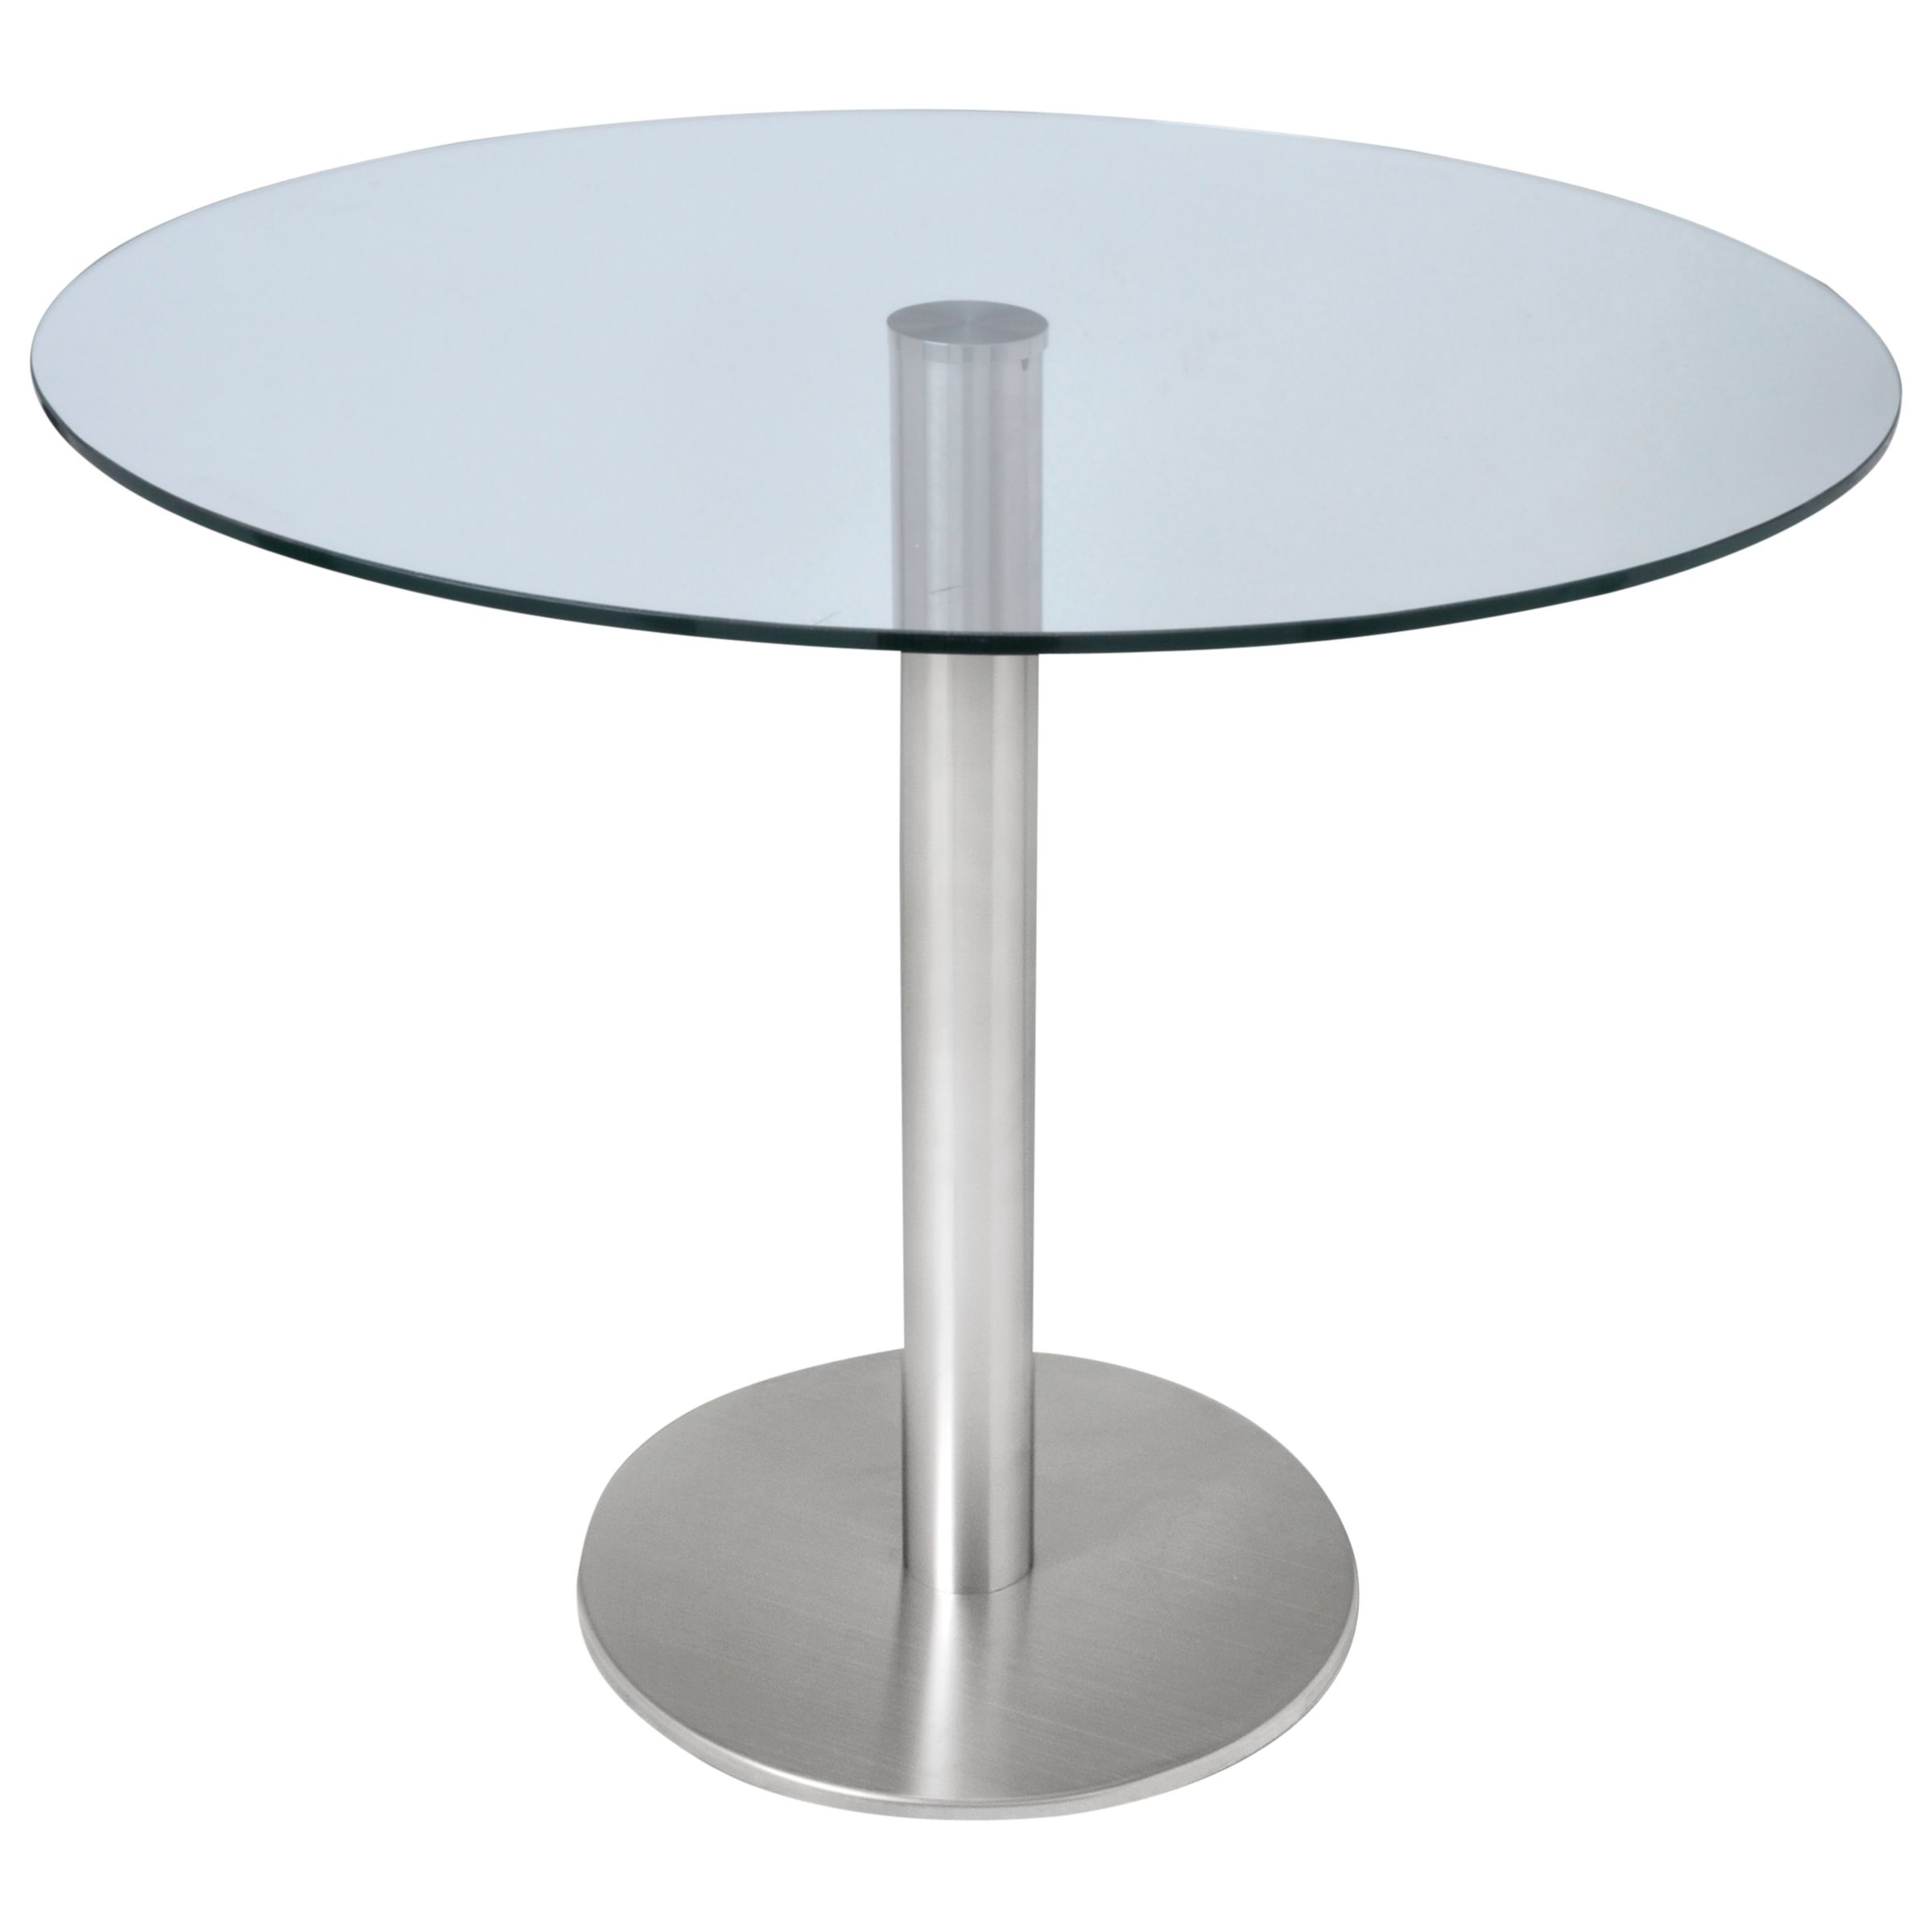 john lewis glass tables : 231289557 from www.comparestoreprices.co.uk size 1600 x 1600 jpeg 93kB